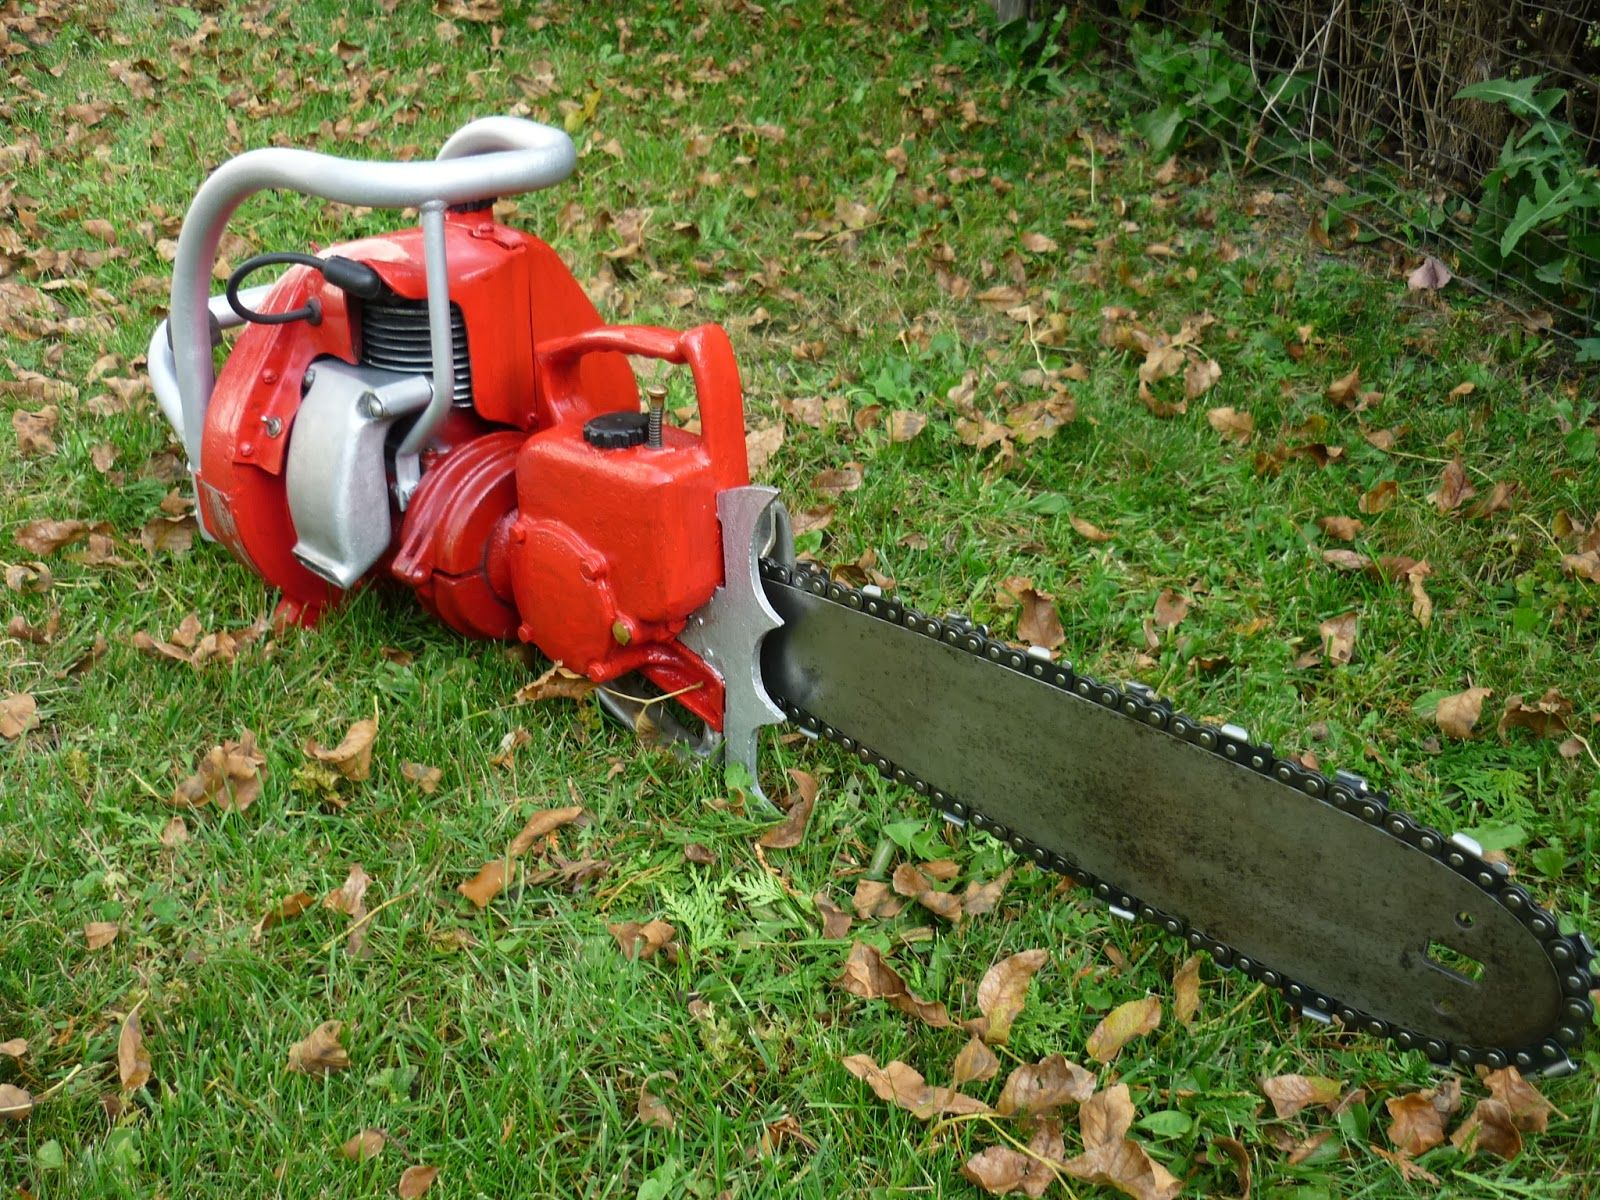 Pm Redhead Chainsaw Upon Bankruptsy Of The Former Iel Company Was Created The New Pm Power Machinery Company With Chainsaw Small Chainsaw Mcculloch Chainsaw